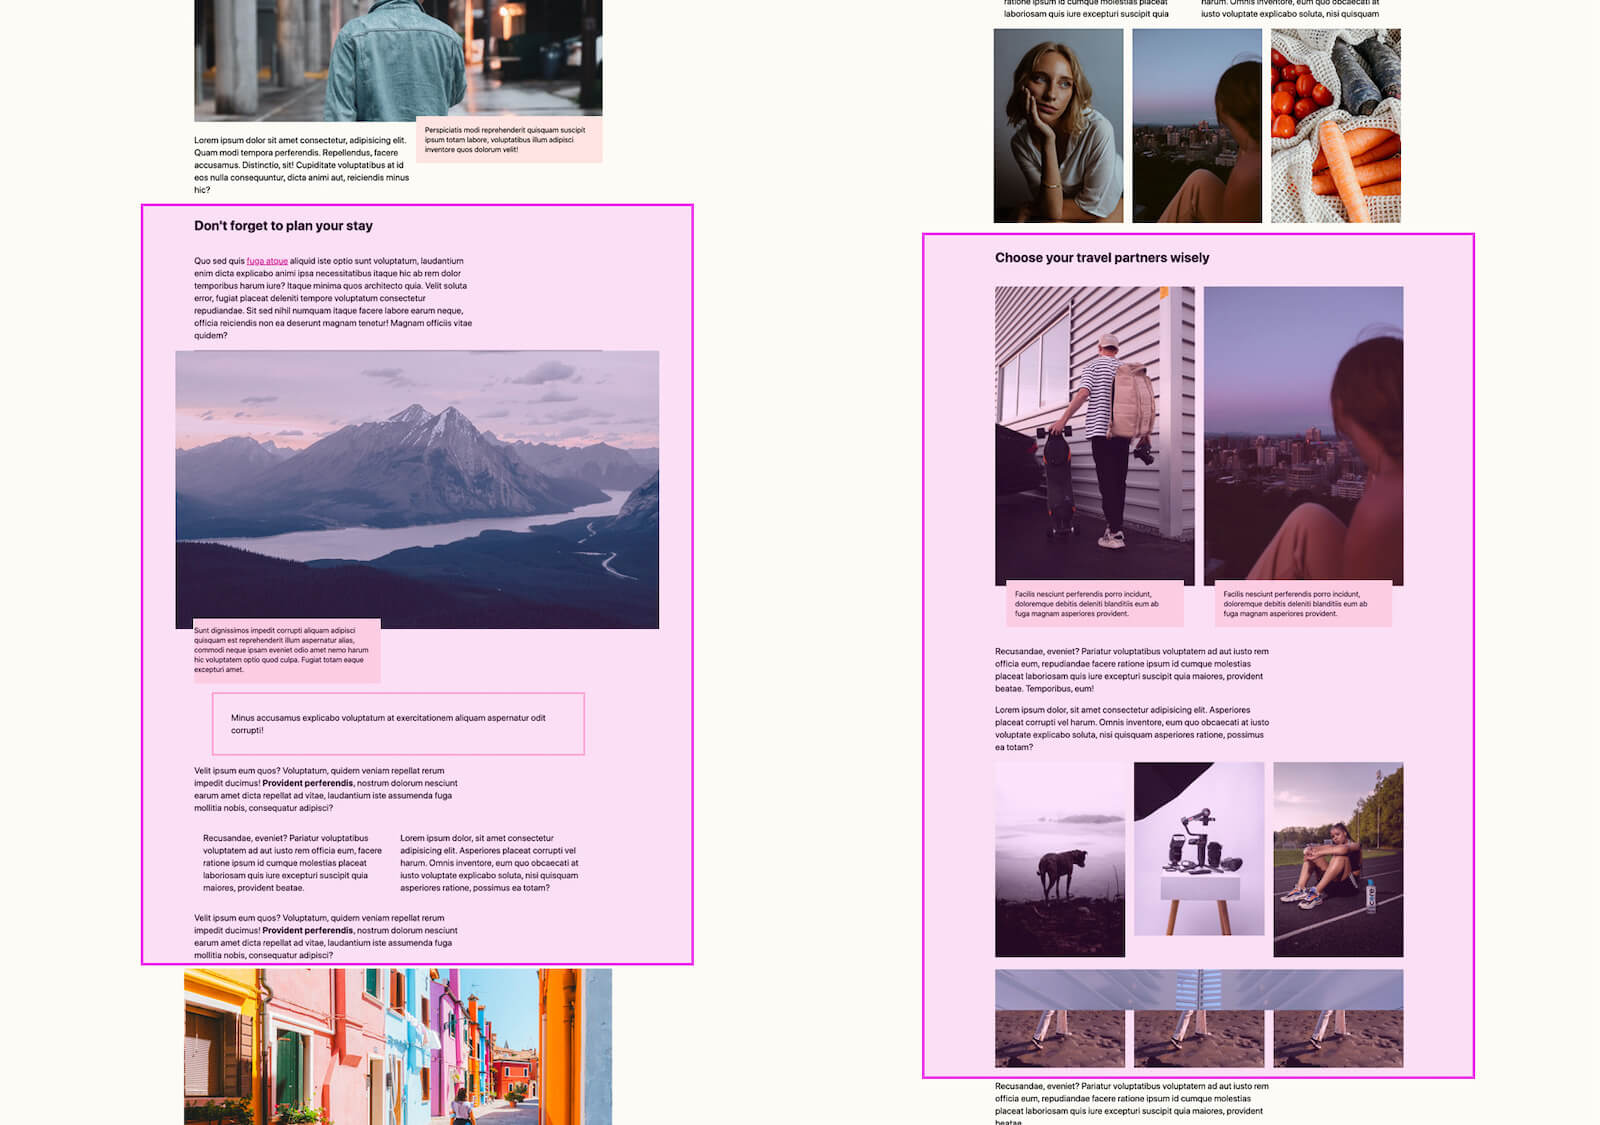 An annotated screenshot of chunking content into sections with a CSS class.